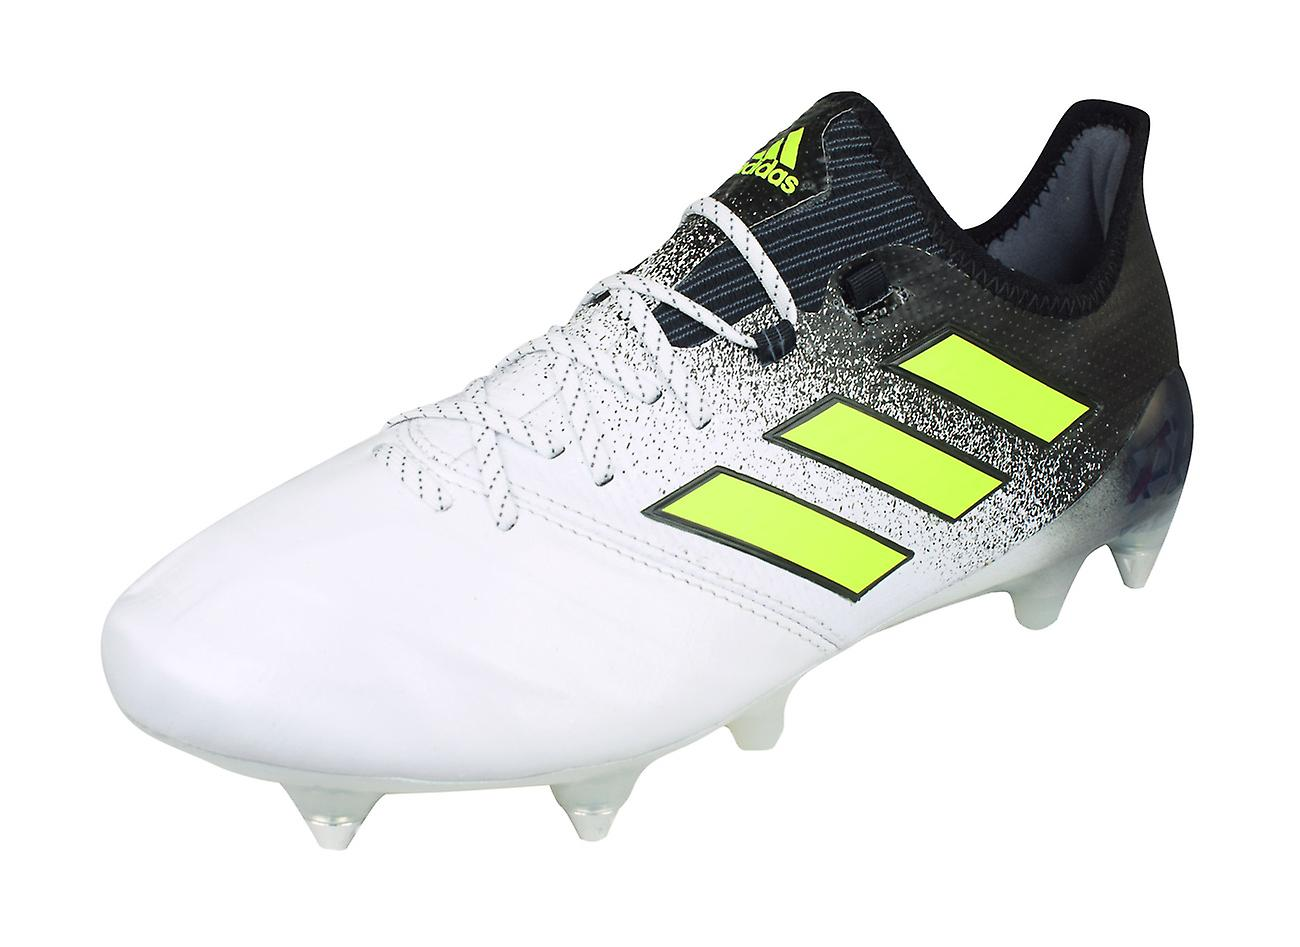 Adidas Ace 17.1 SG Leather Mens Soft Ground Football bottes - blanc and noir